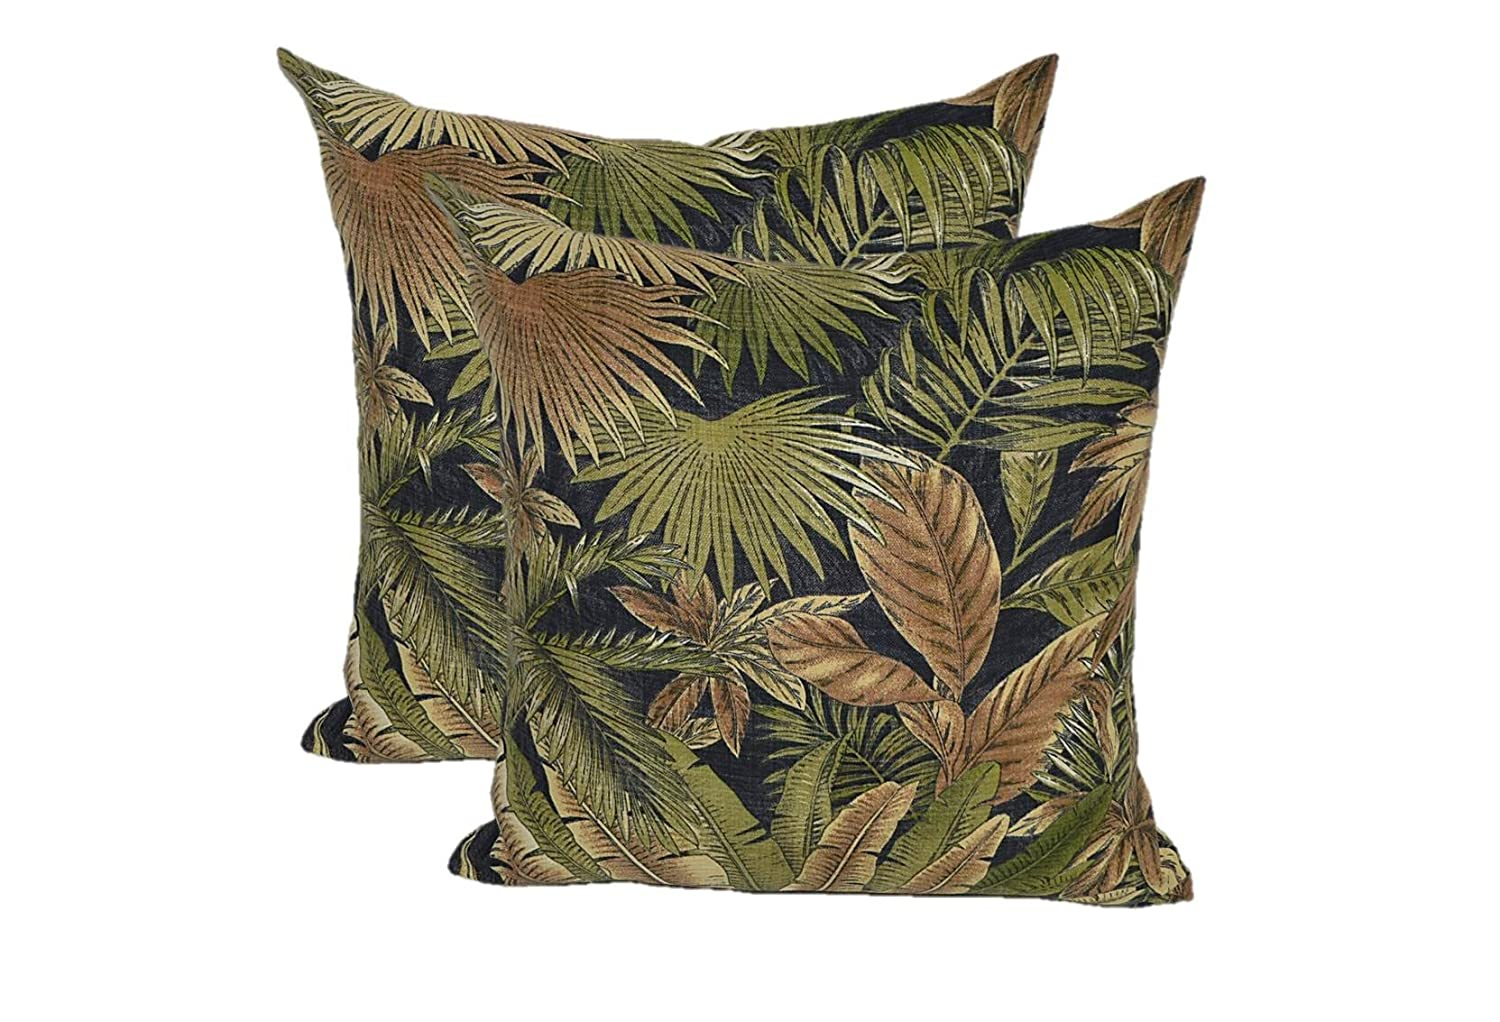 Set of 2 – Indoor Outdoor Square Decorative Throw Toss Pillows – Tommy Bahama Bahamian Breeze – Black Green Tan Tropical Palm Leaf – Choose Size 17 x 17